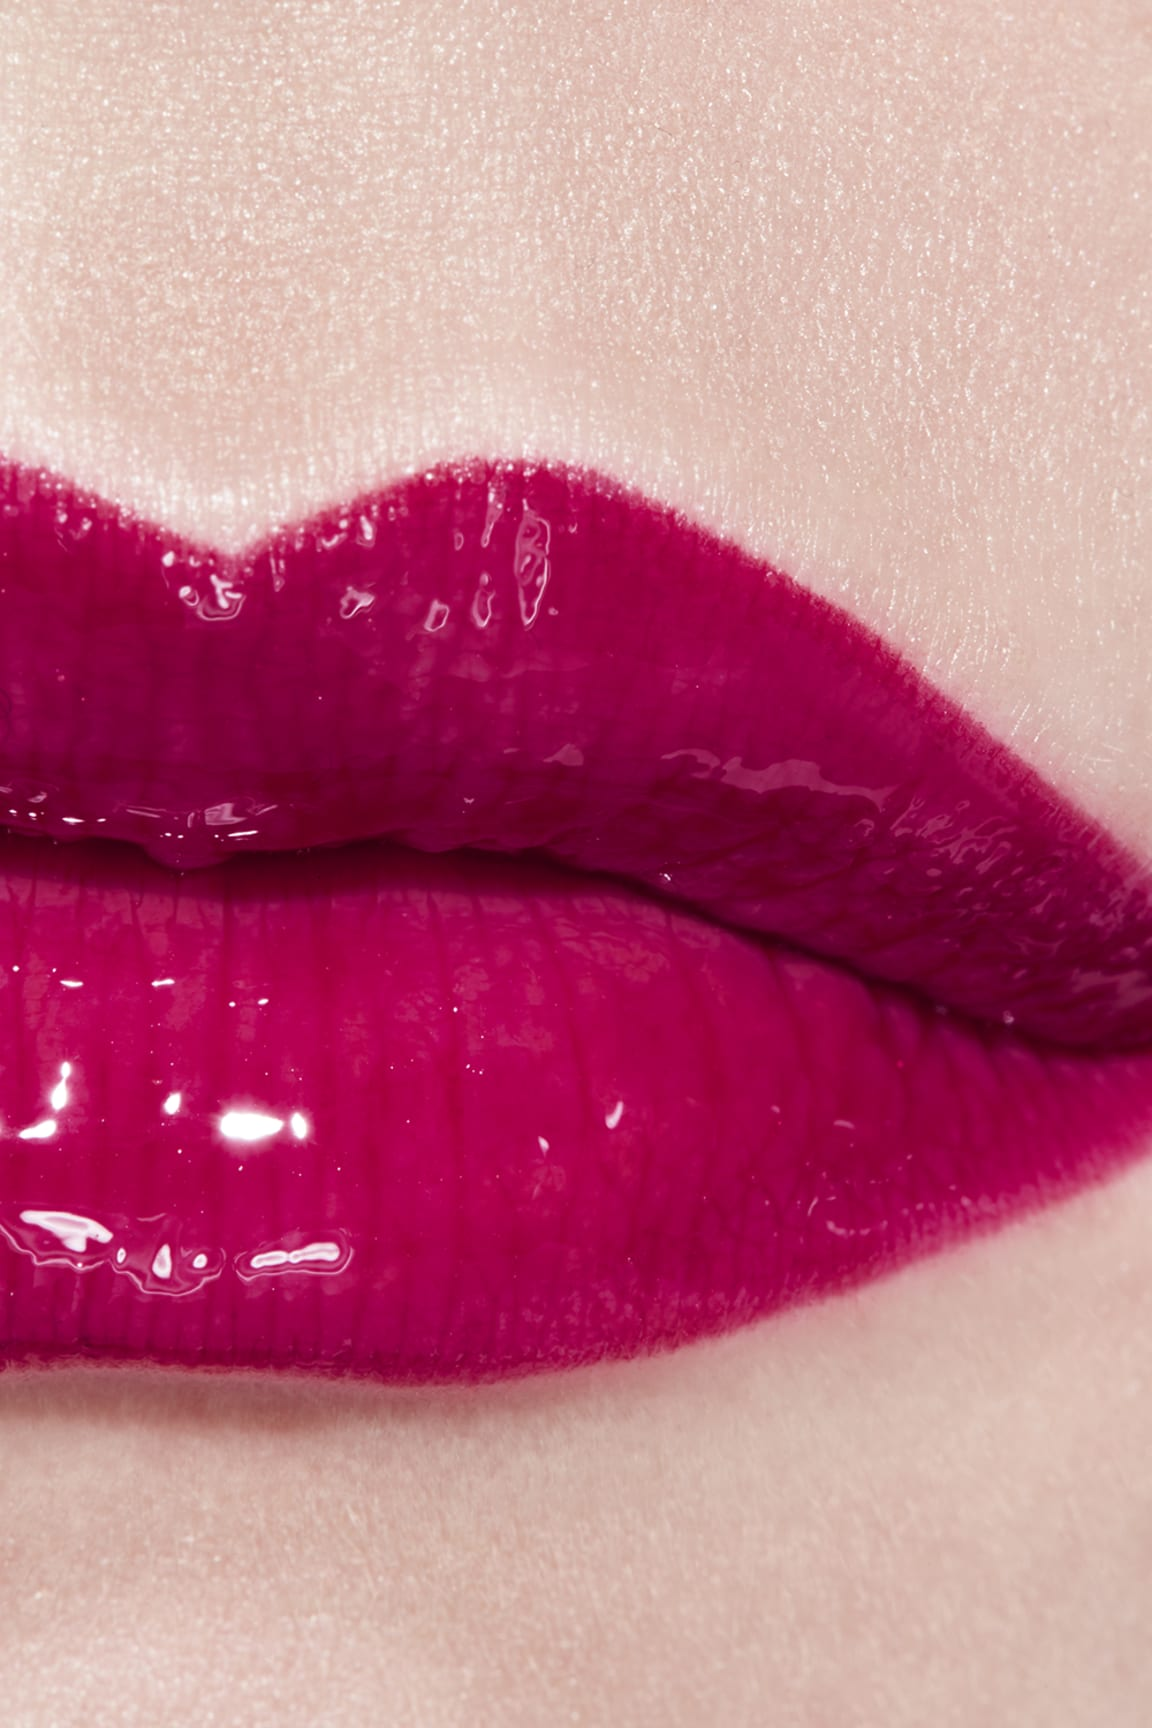 Application makeup visual 3 - ROUGE COCO GLOSS 766 - CARACTÈRE